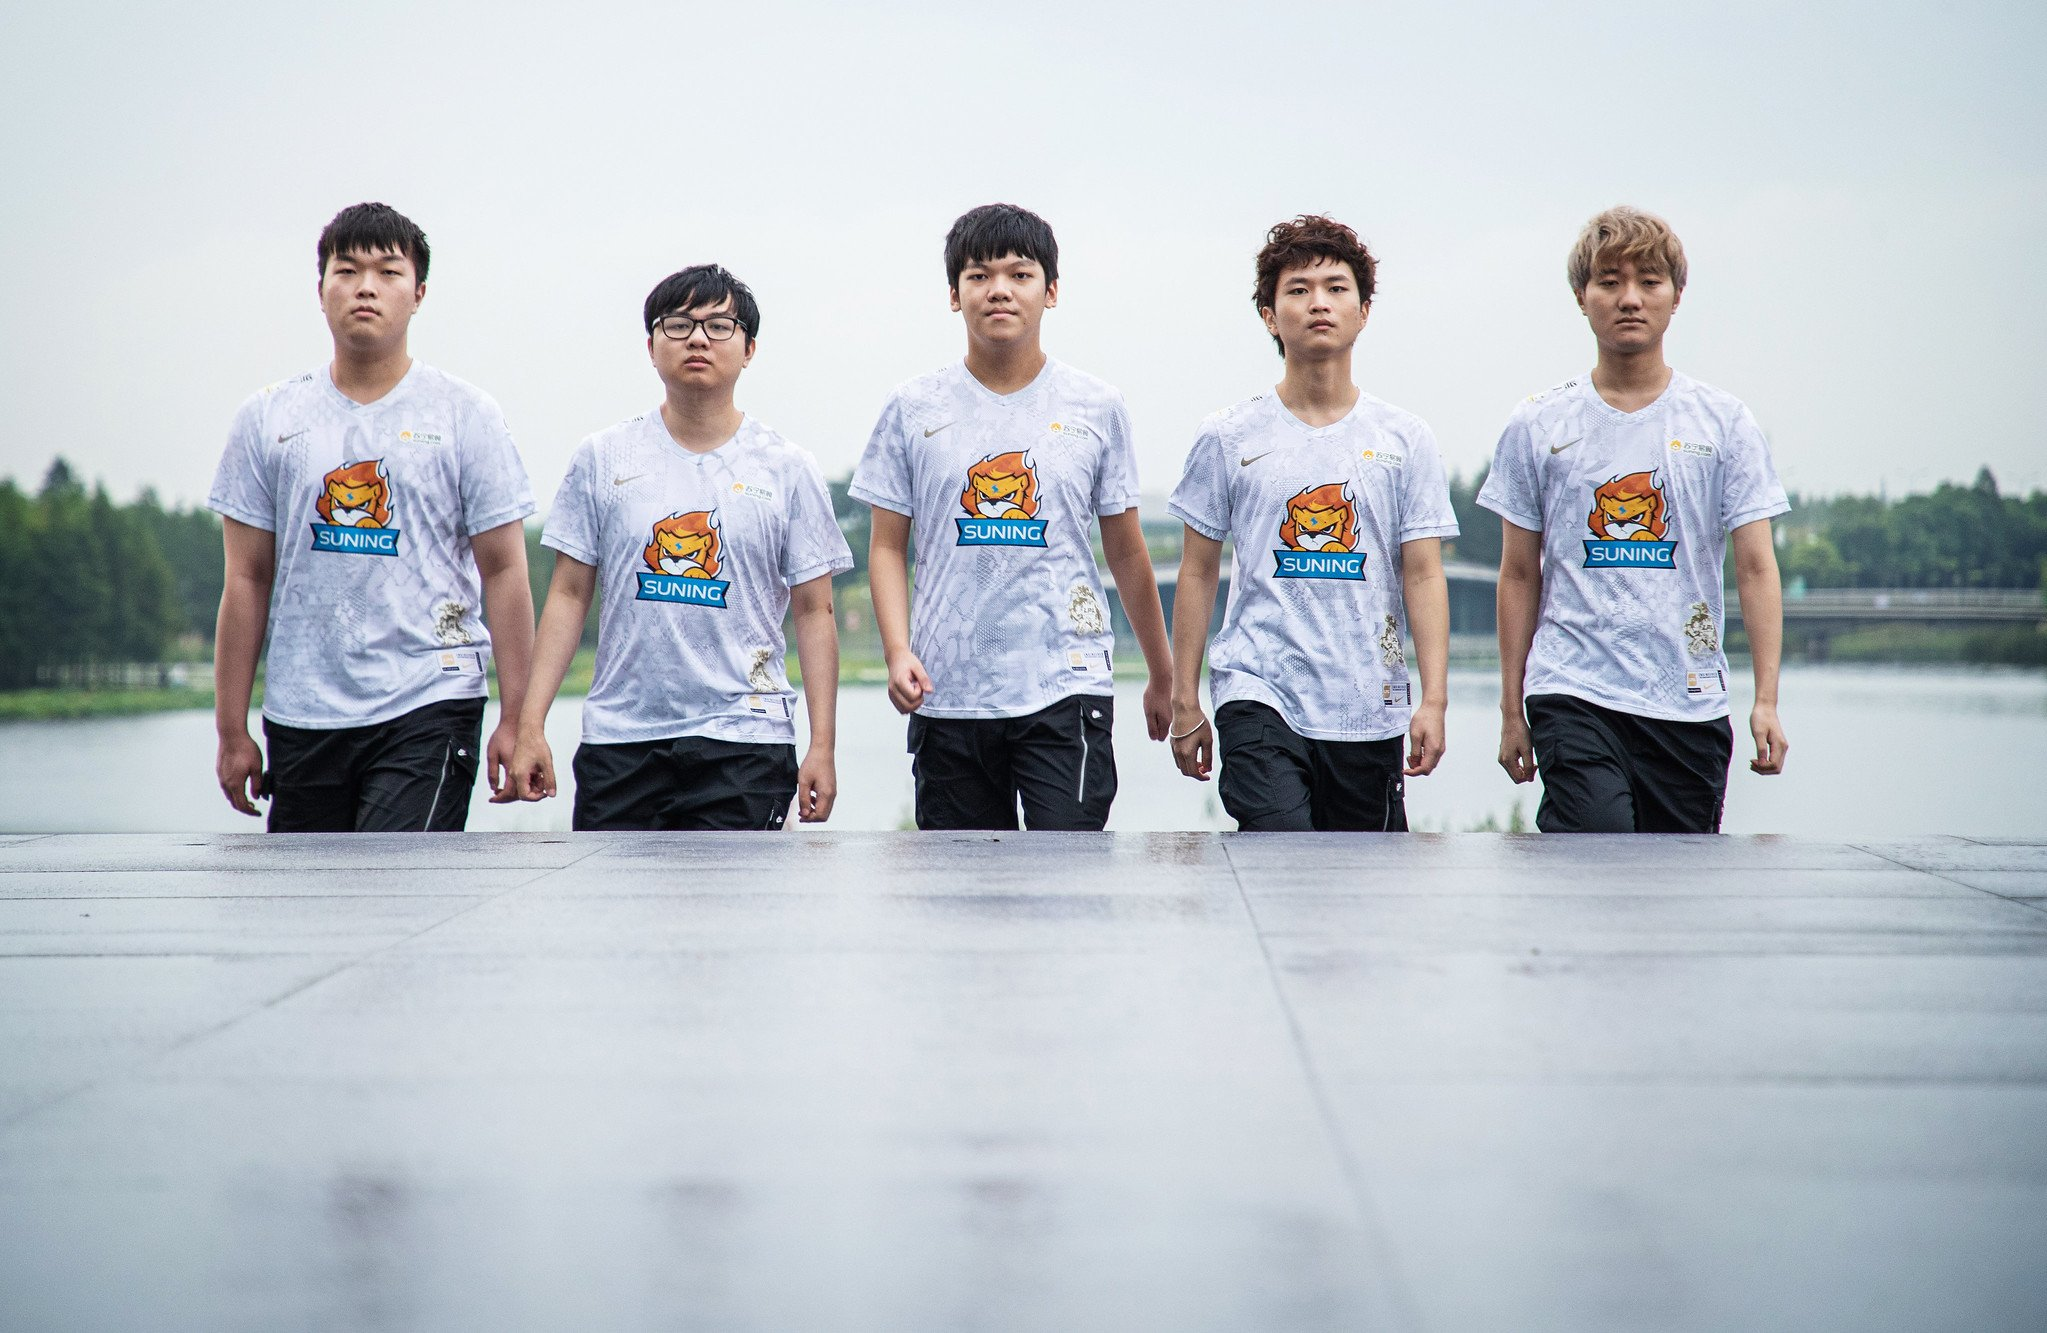 Suning Defeated Top Esports To Secure World Championship Finals Spot Against DAMWON Gaming